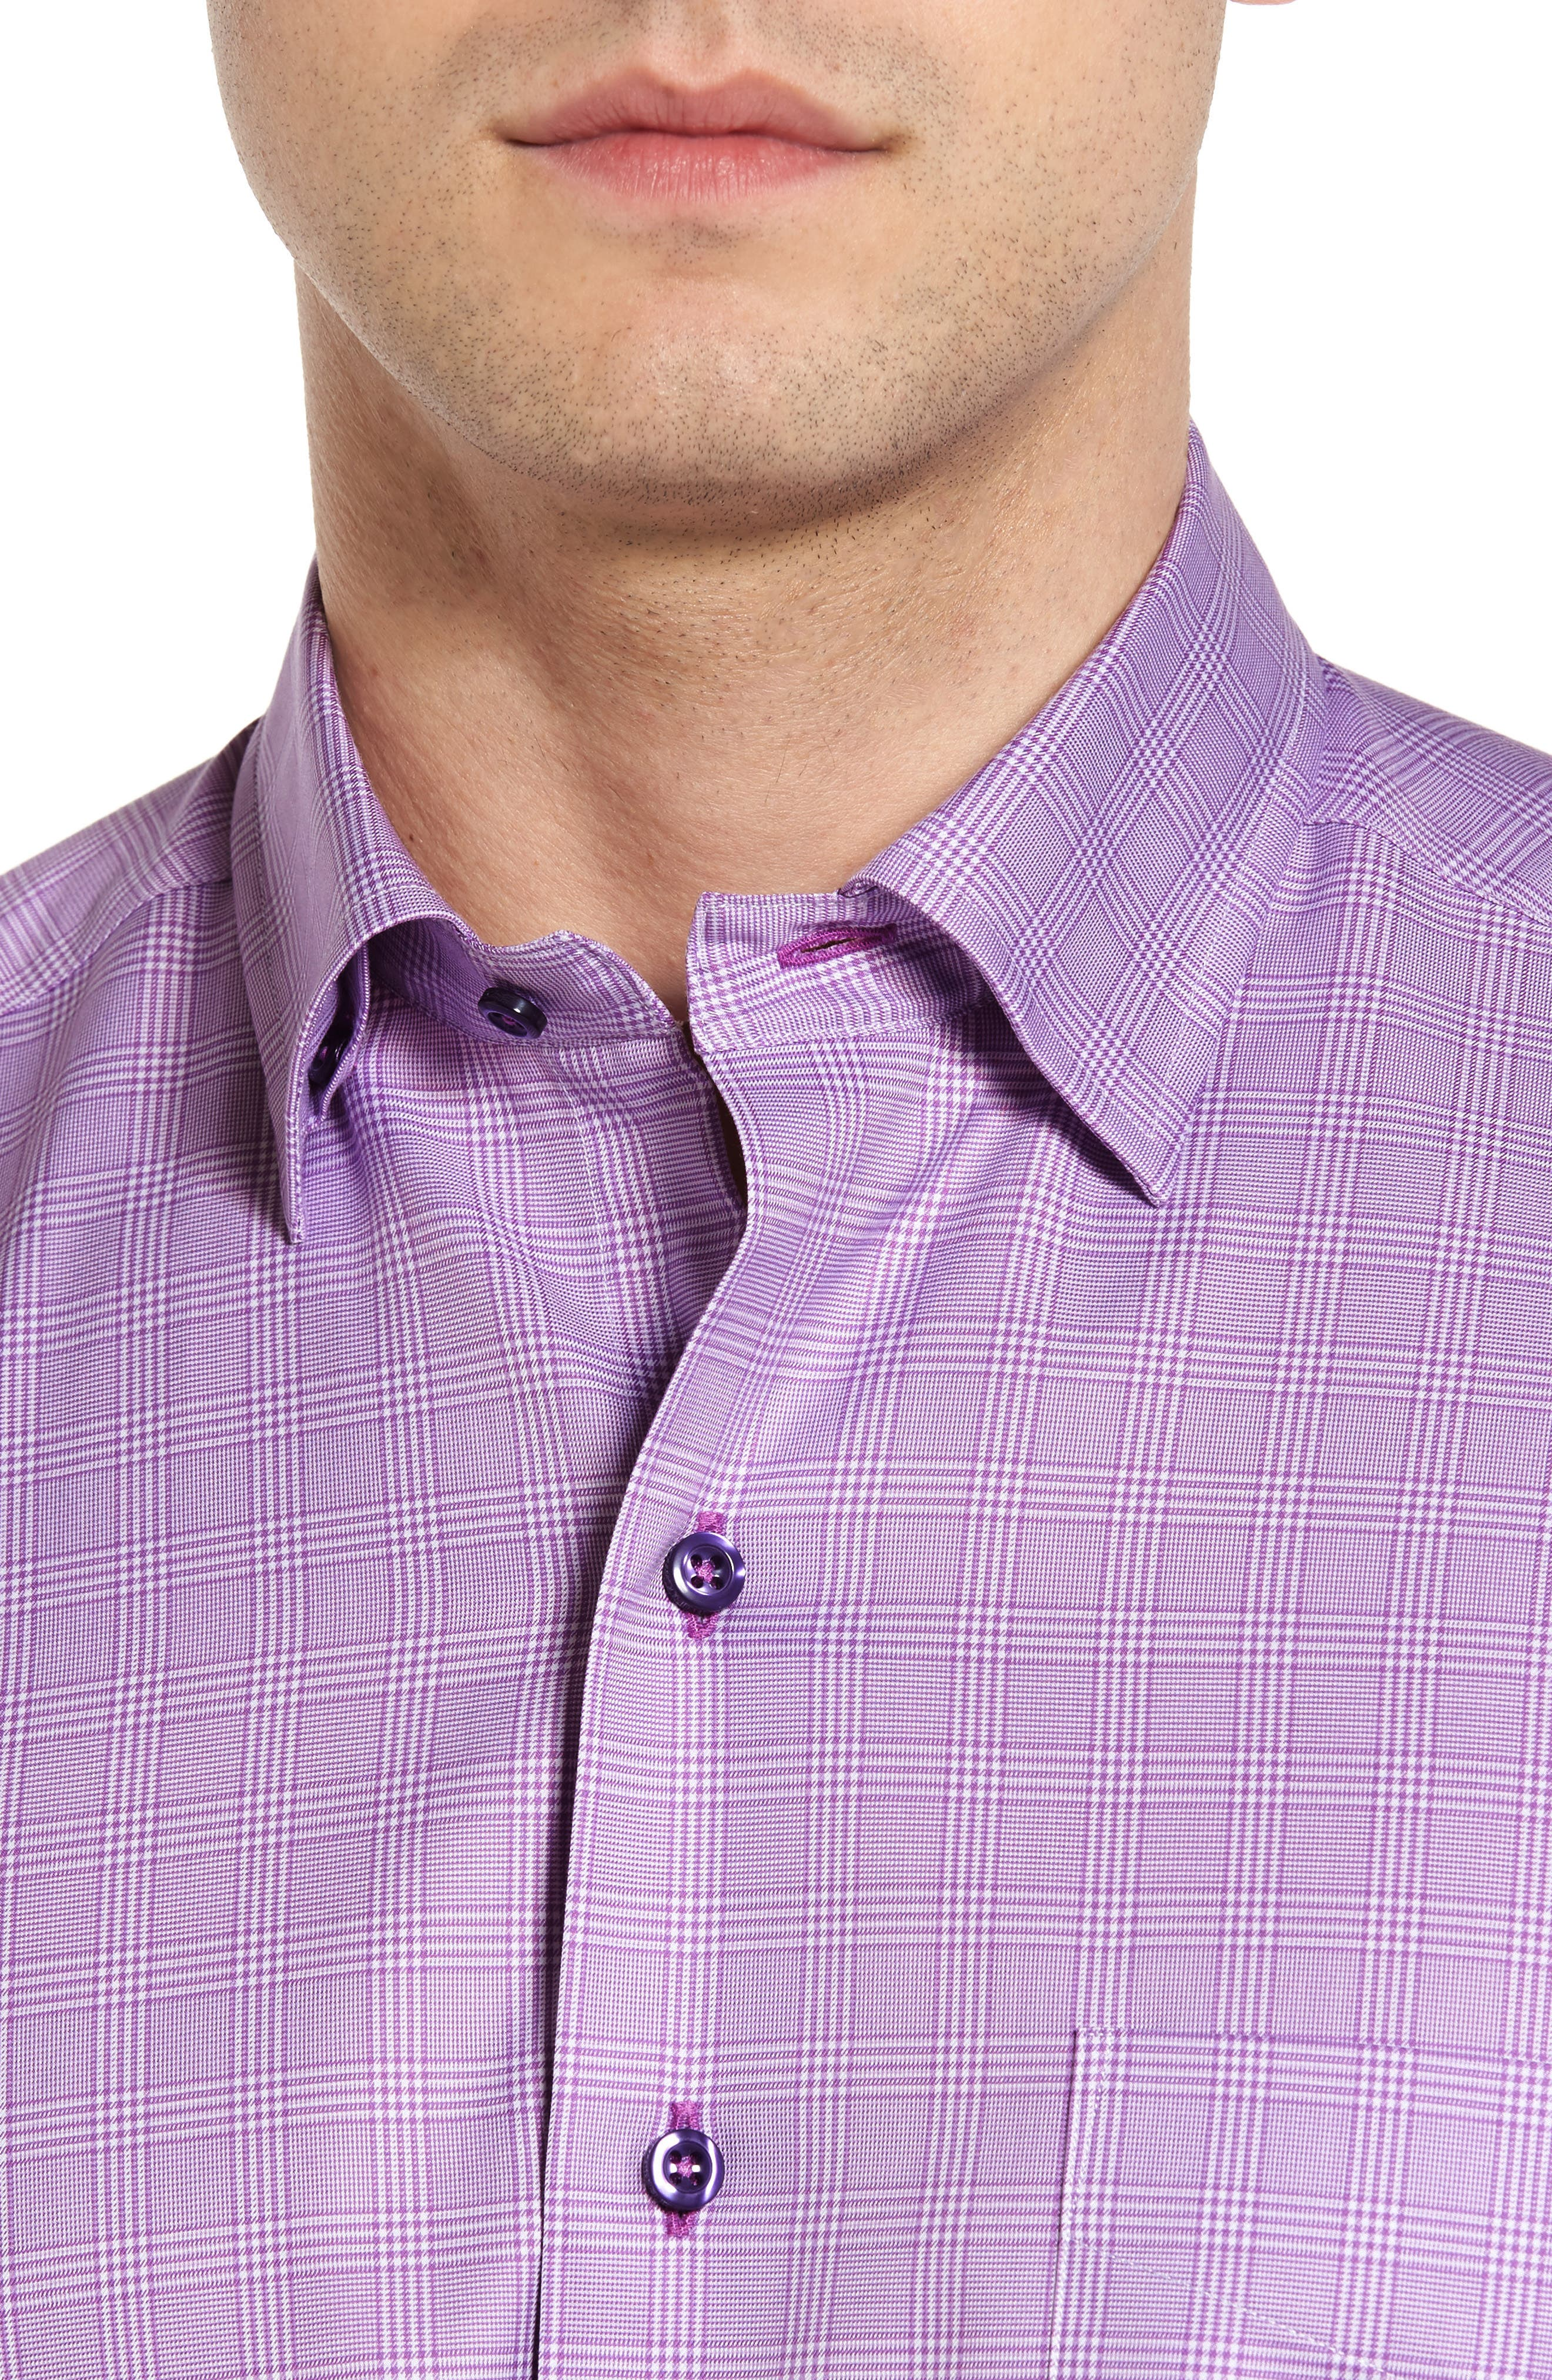 Regular Fit Plaid Sport Shirt,                             Alternate thumbnail 4, color,                             Lilac